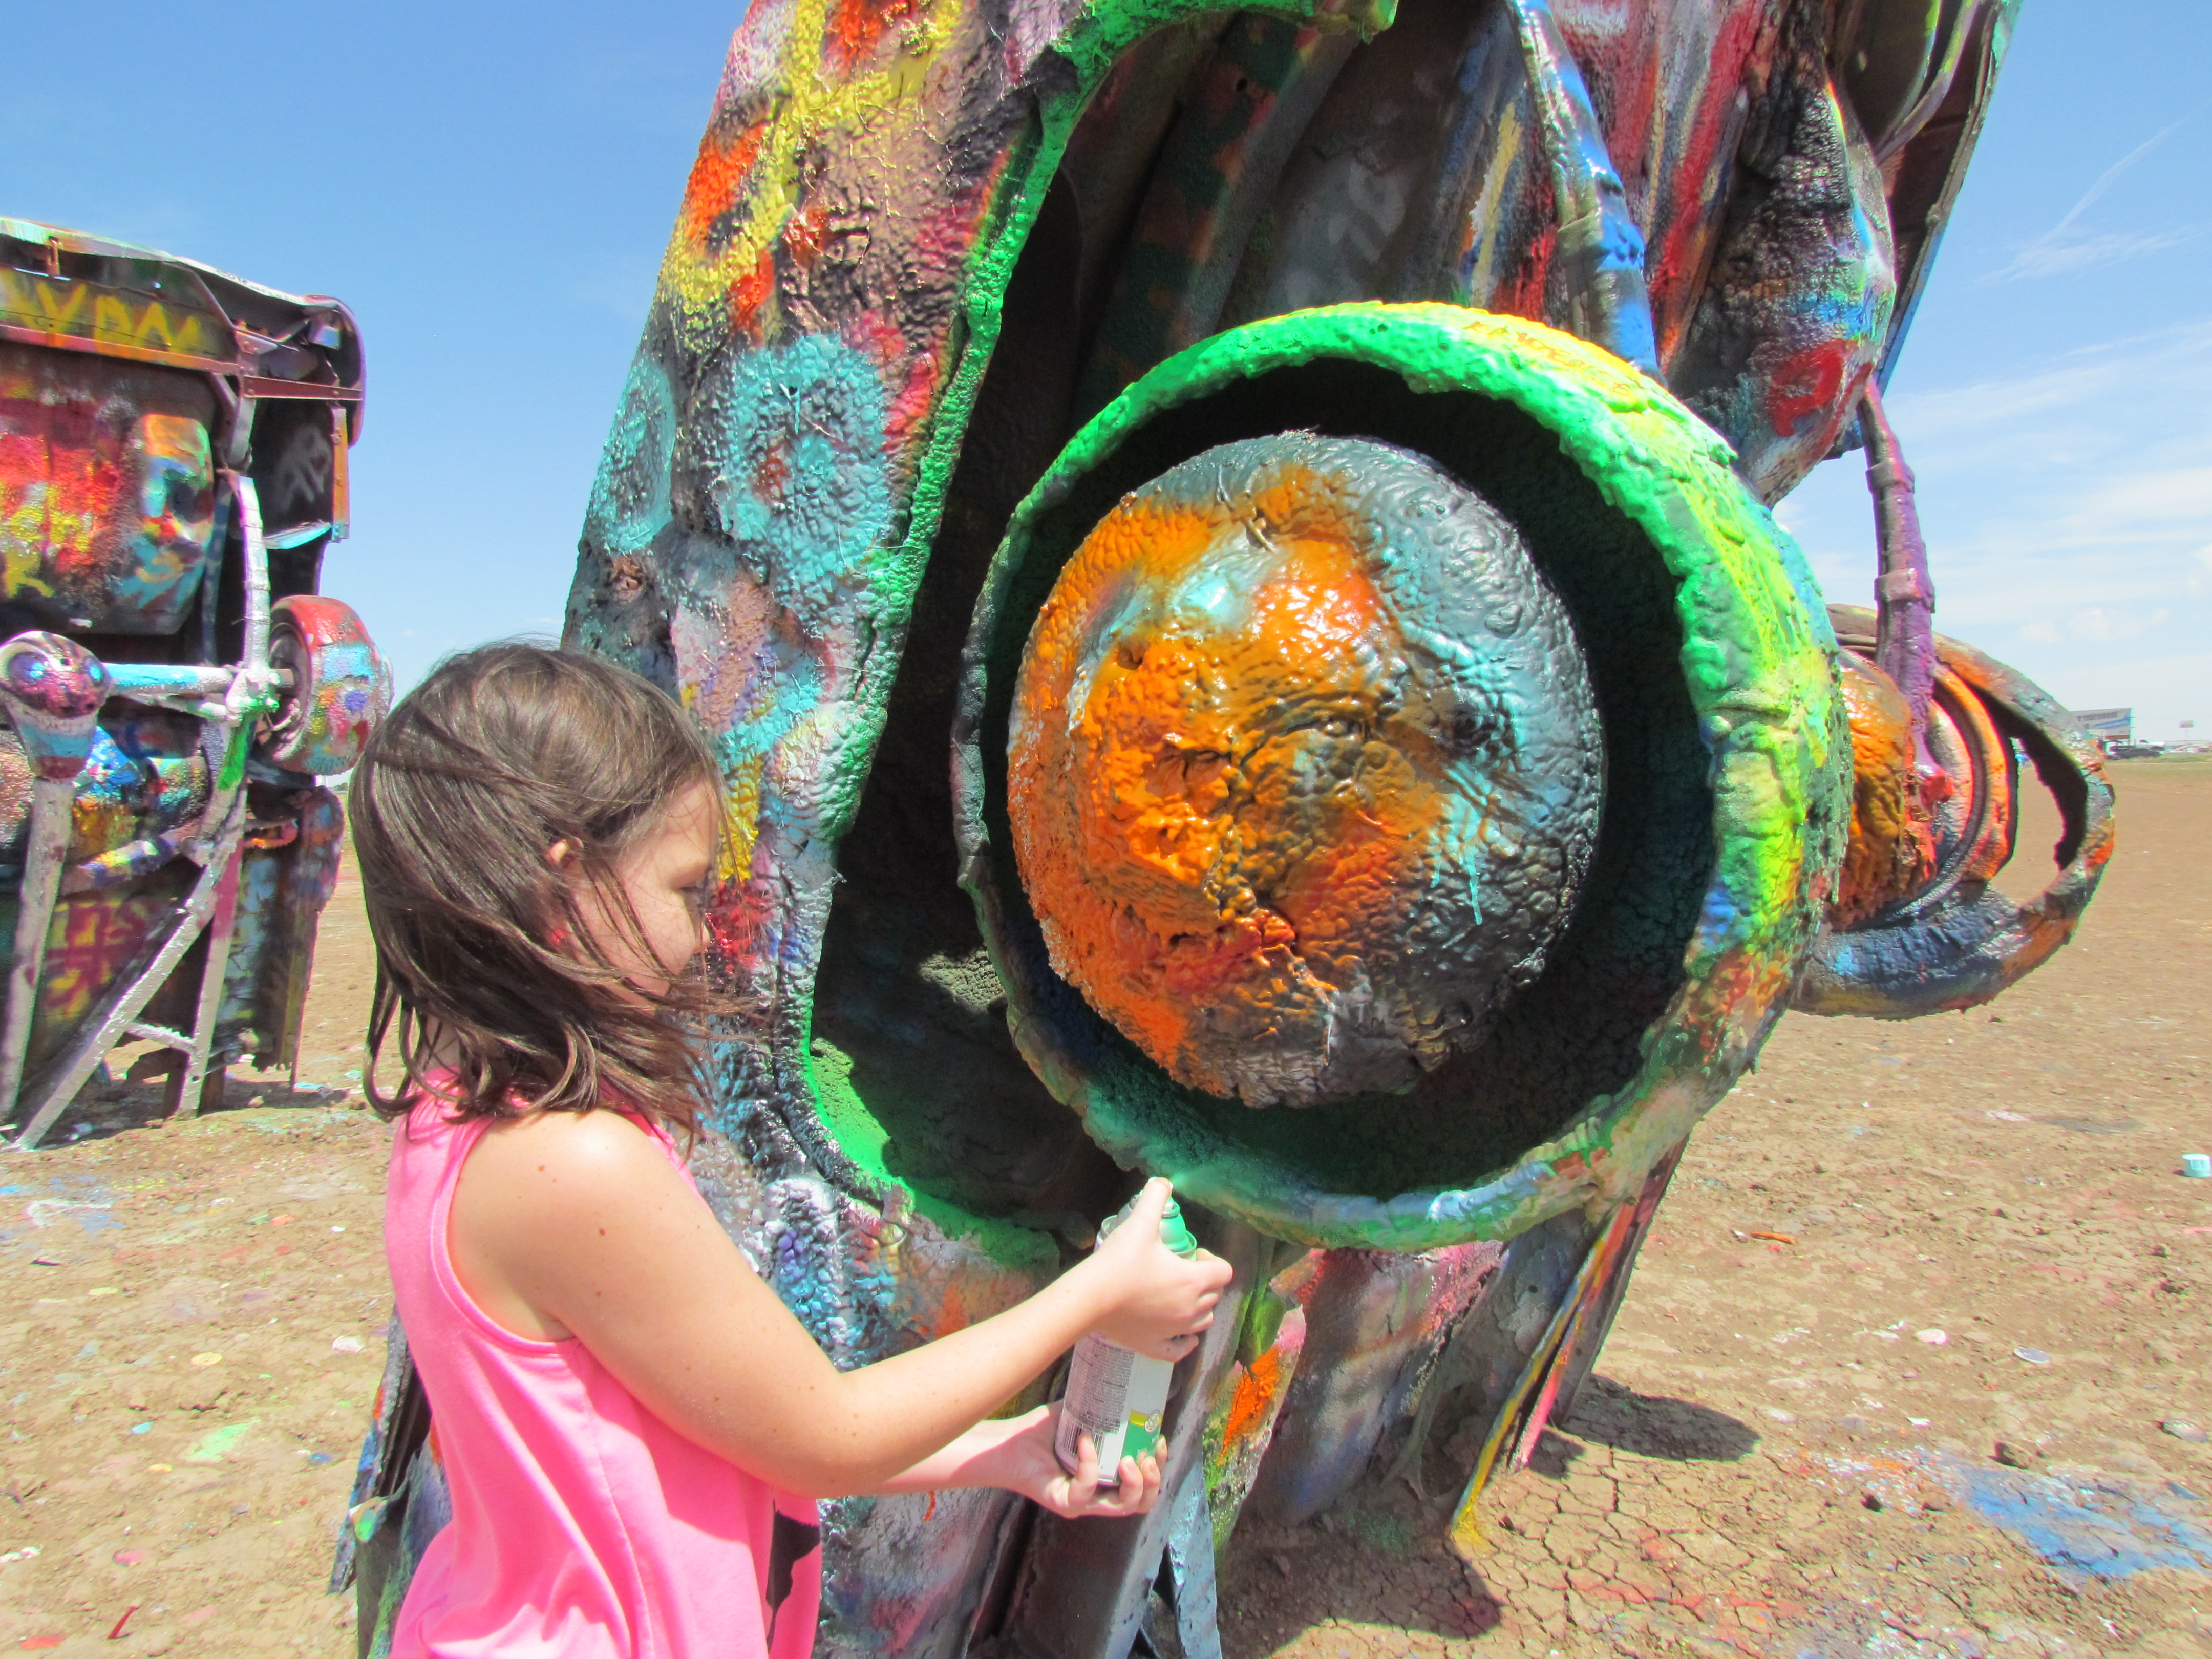 Leaving your mark (or maybe not) at Cadillac Ranch